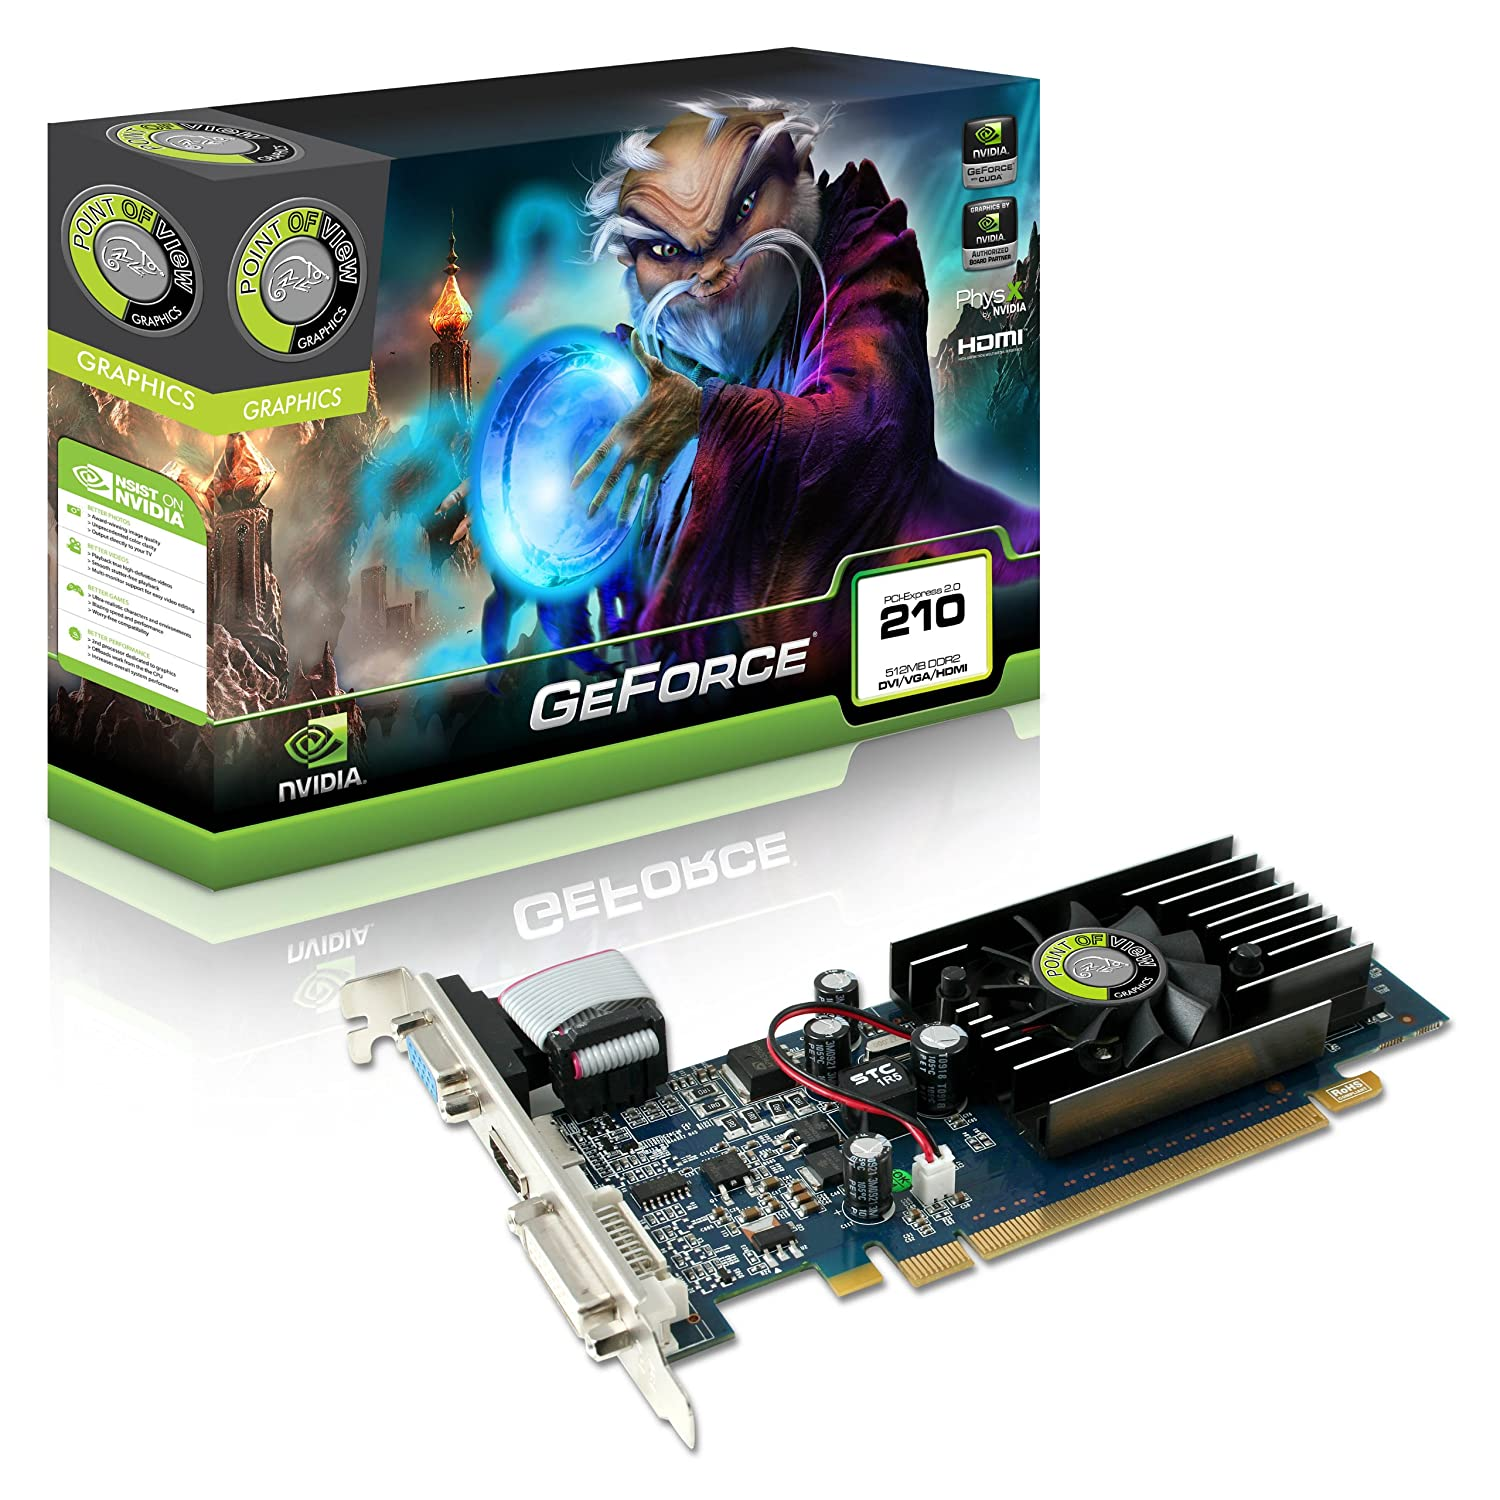 Amazon.com: Point of View GeForce (with CUDA) 210 512MB PCI ...